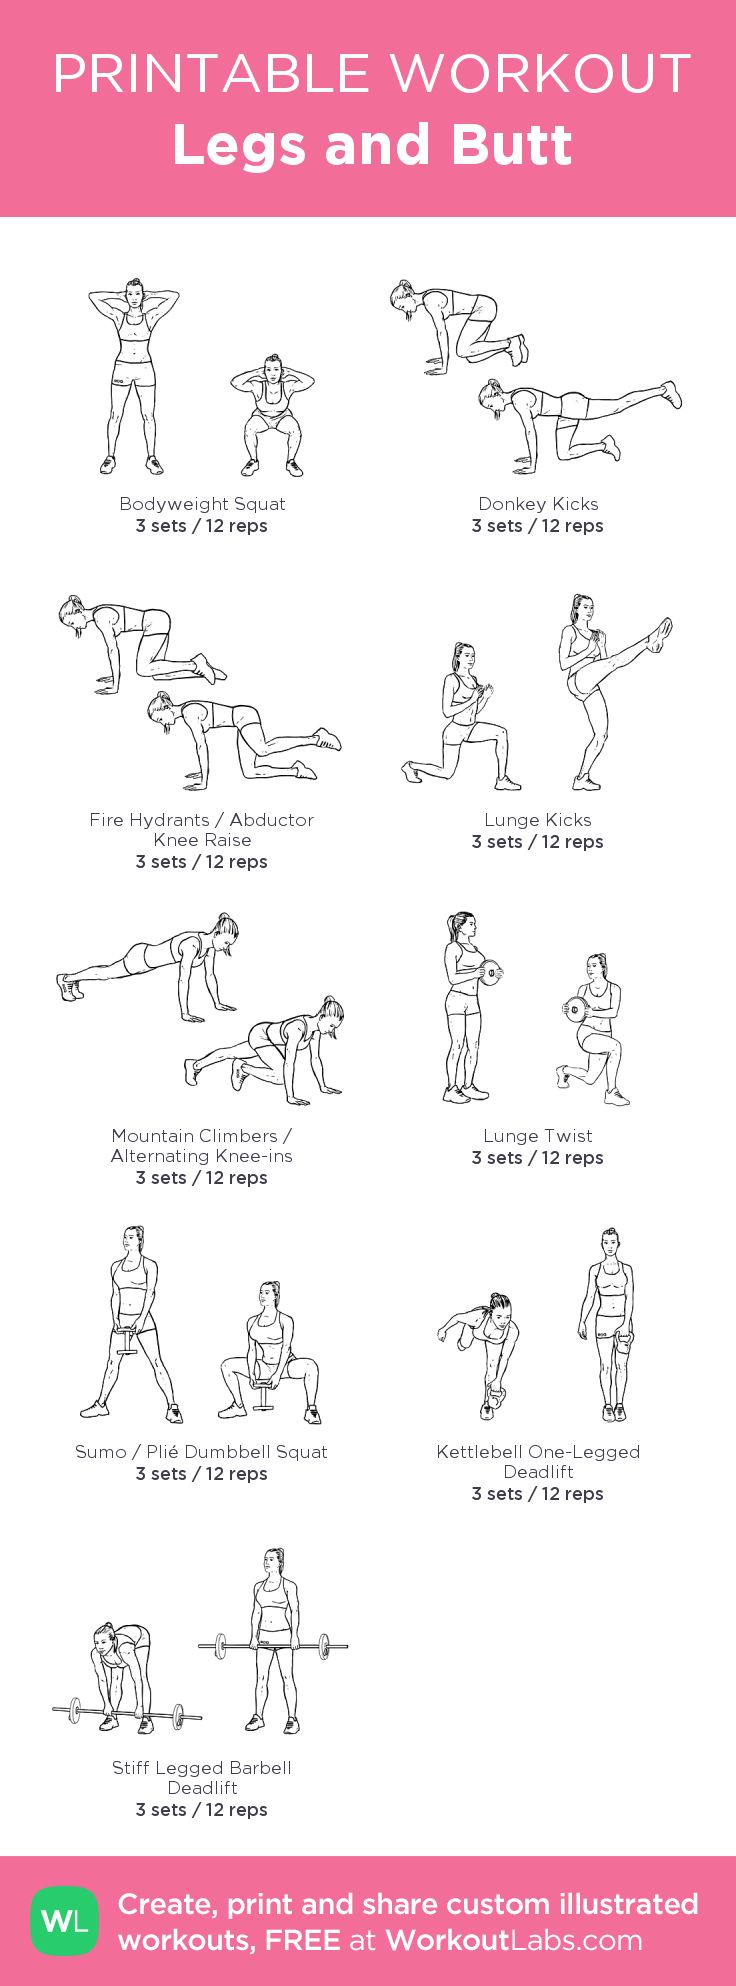 Legs and Butt – my custom workout created at WorkoutLabs.com • Click through to download as printable PDF! #customworkout